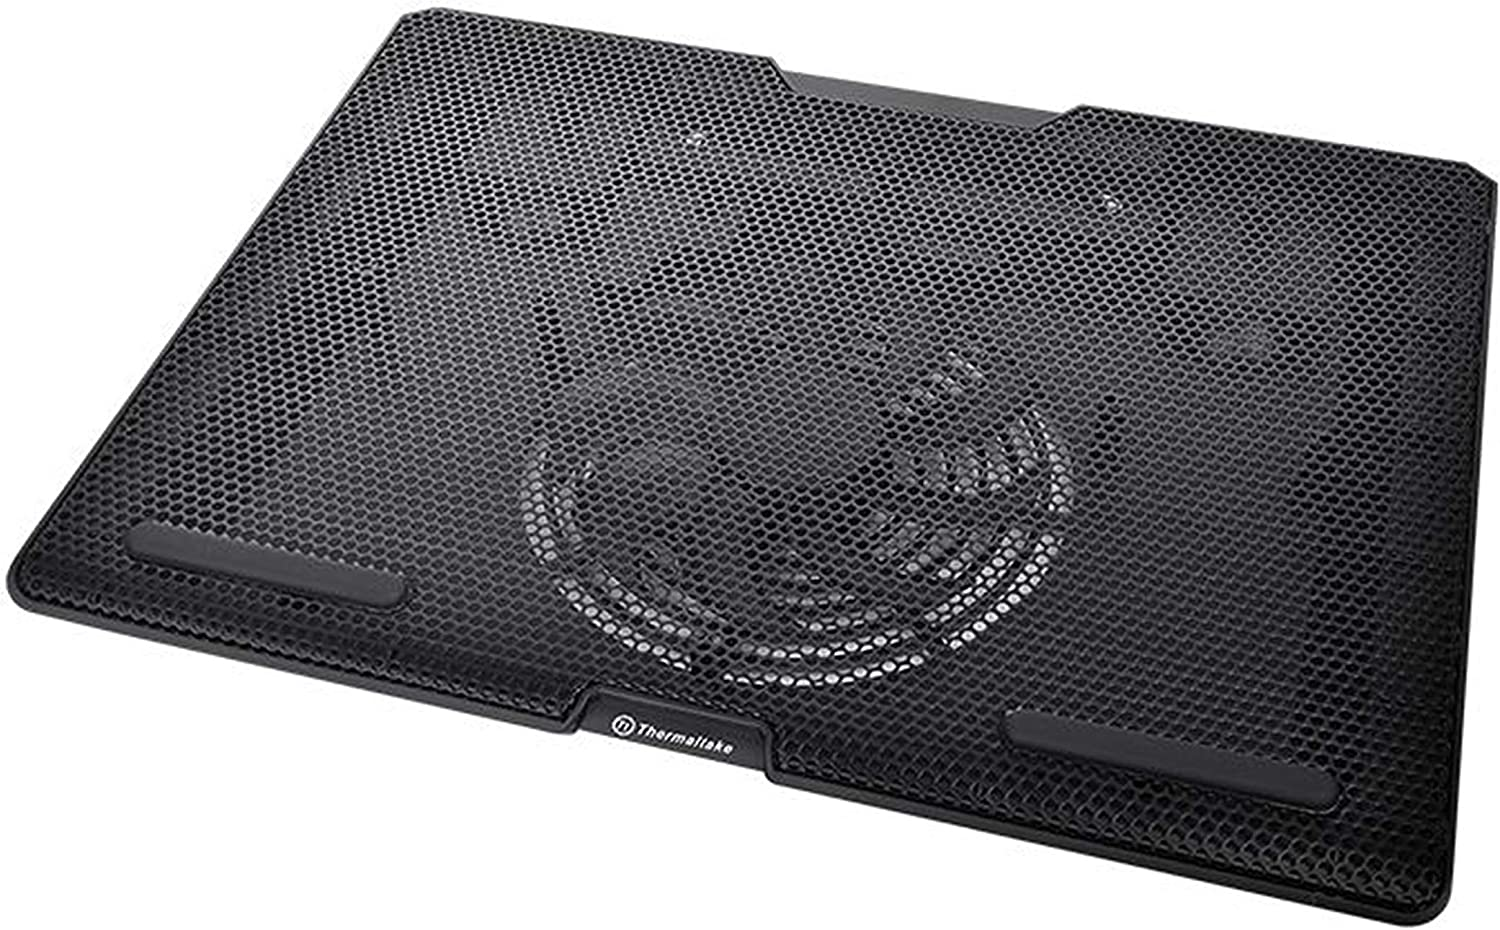 Thermaltake Massive S14 Mesh Steel Panel 140mm Silent Fan Adjustable Height Setting Supporting Up to 15 Inch Notebook Coooler CL-N015-PL14BL-A, Black